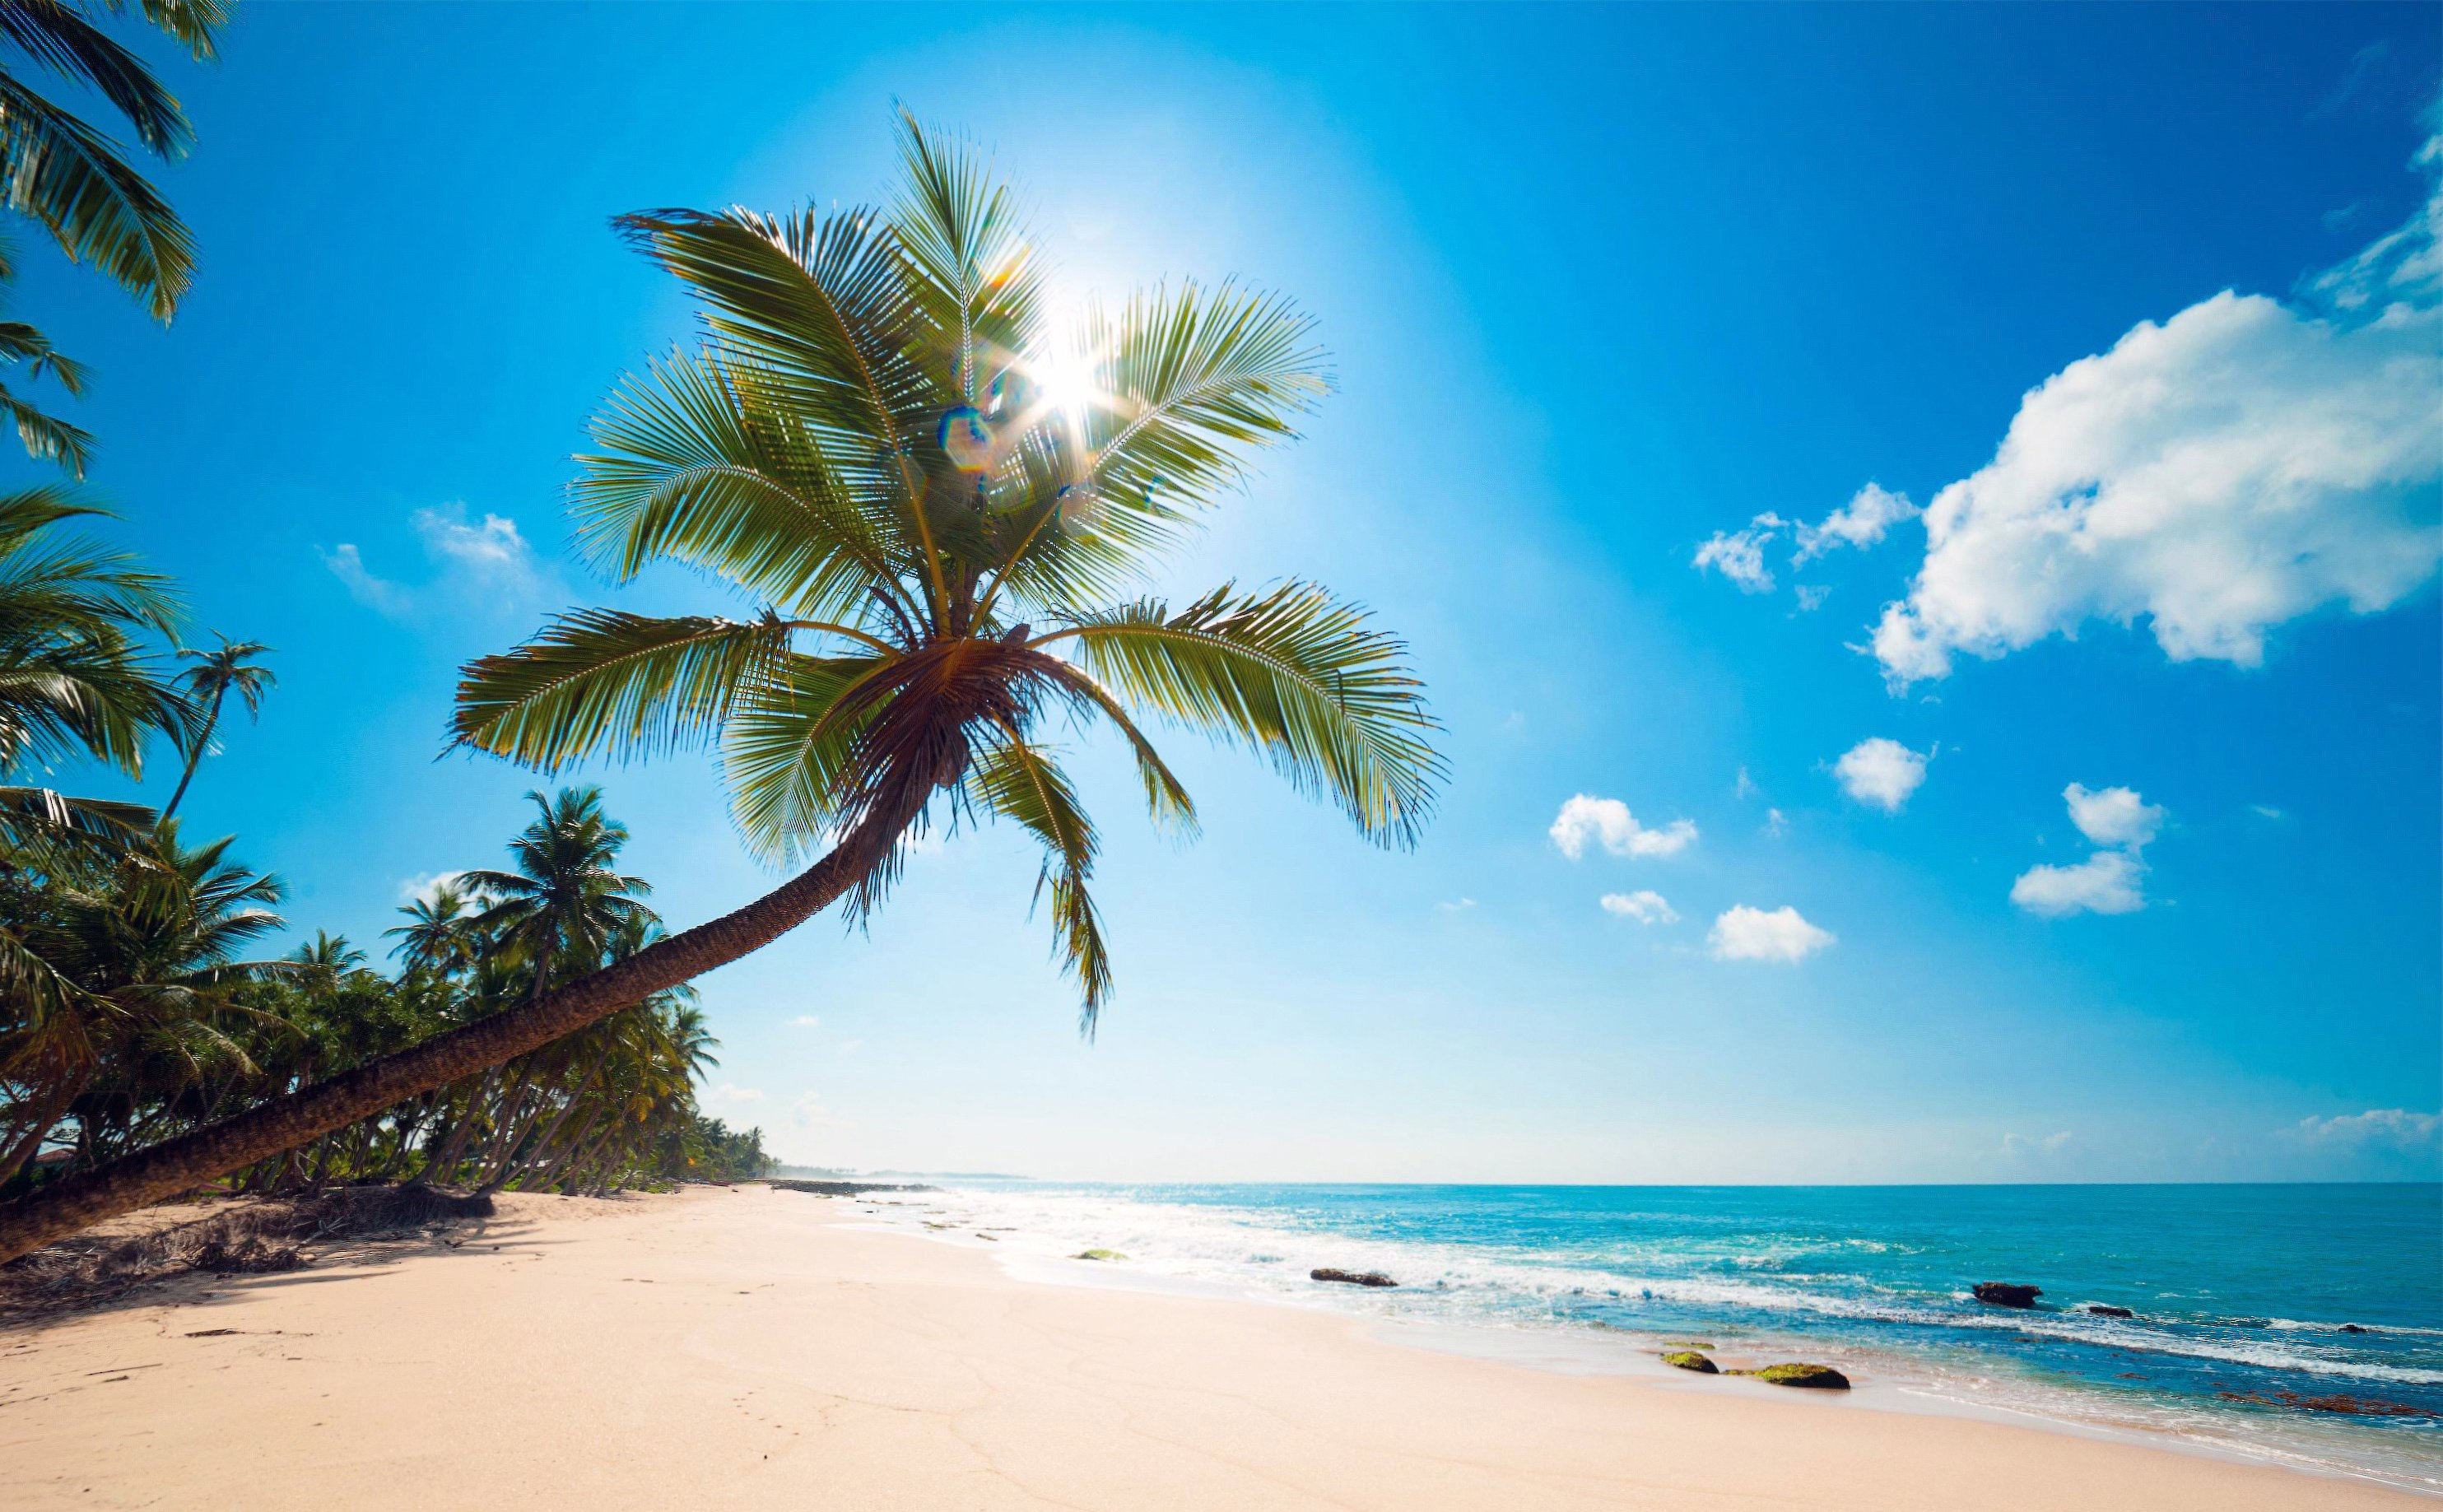 Ocean Palm Trees Beach S Tropics Wallpaper 2968x1837 393087 Wallpaperup